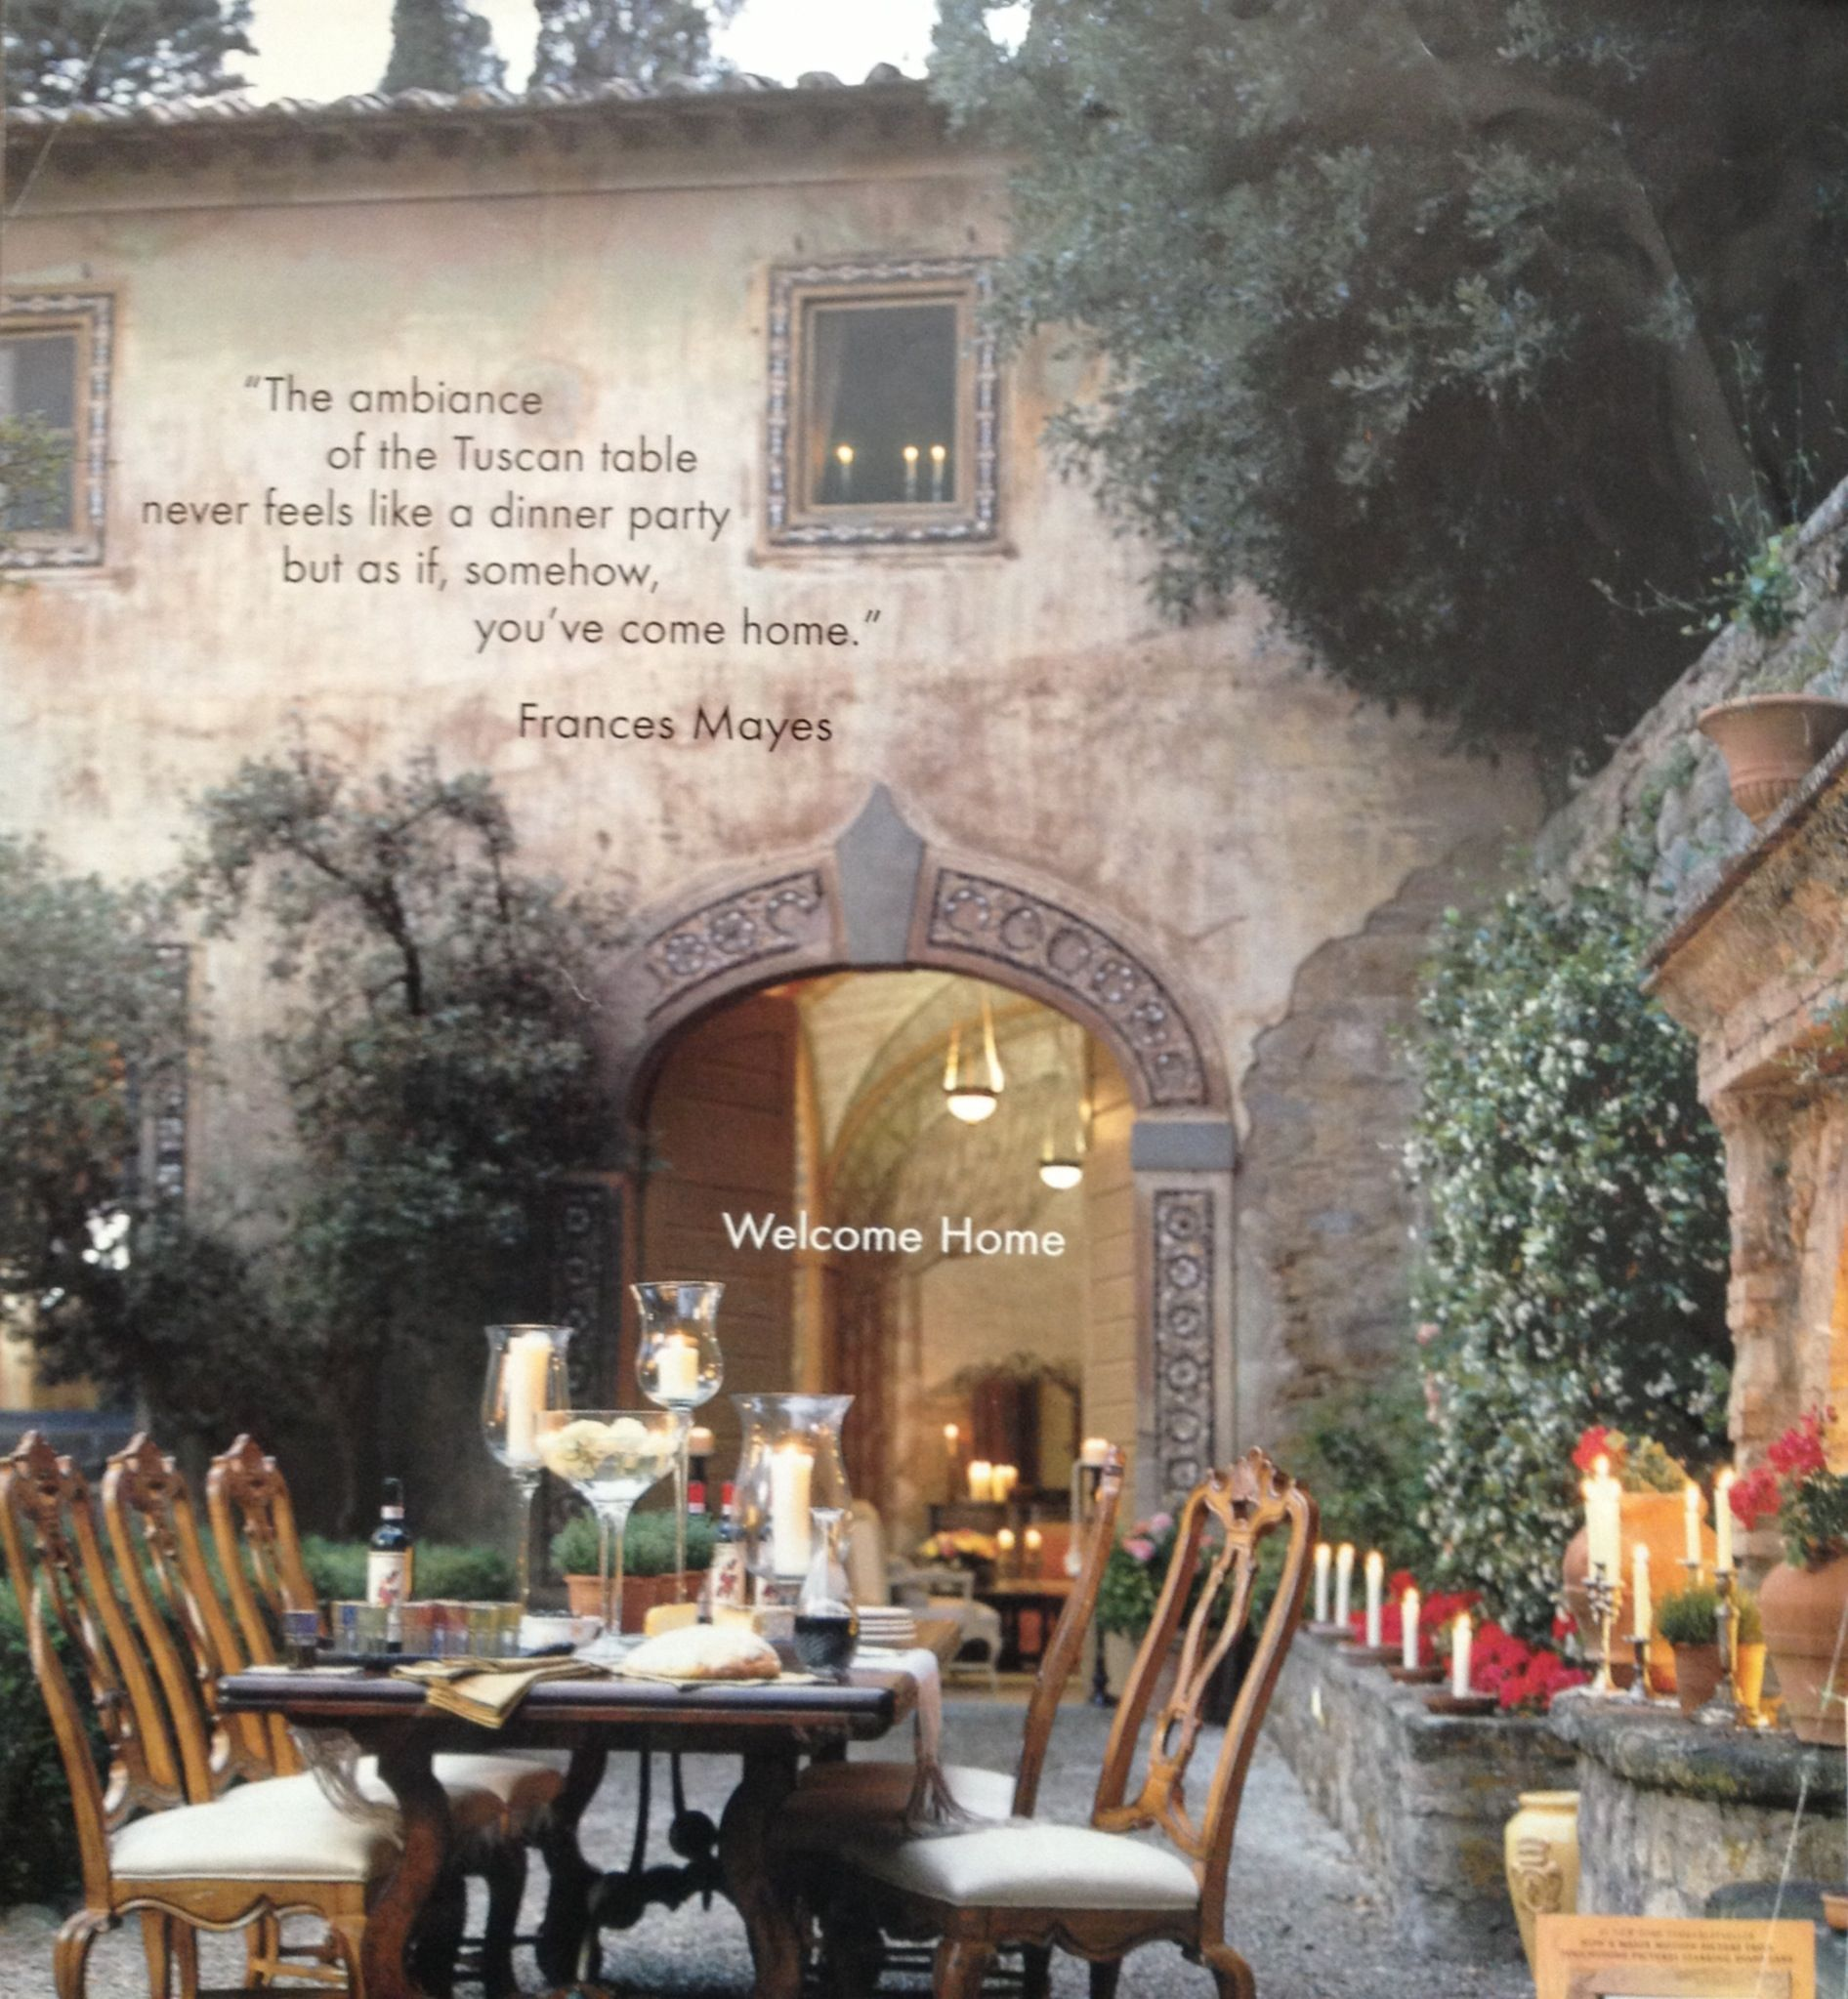 Al fresco dining tuscan style all it needs is some family